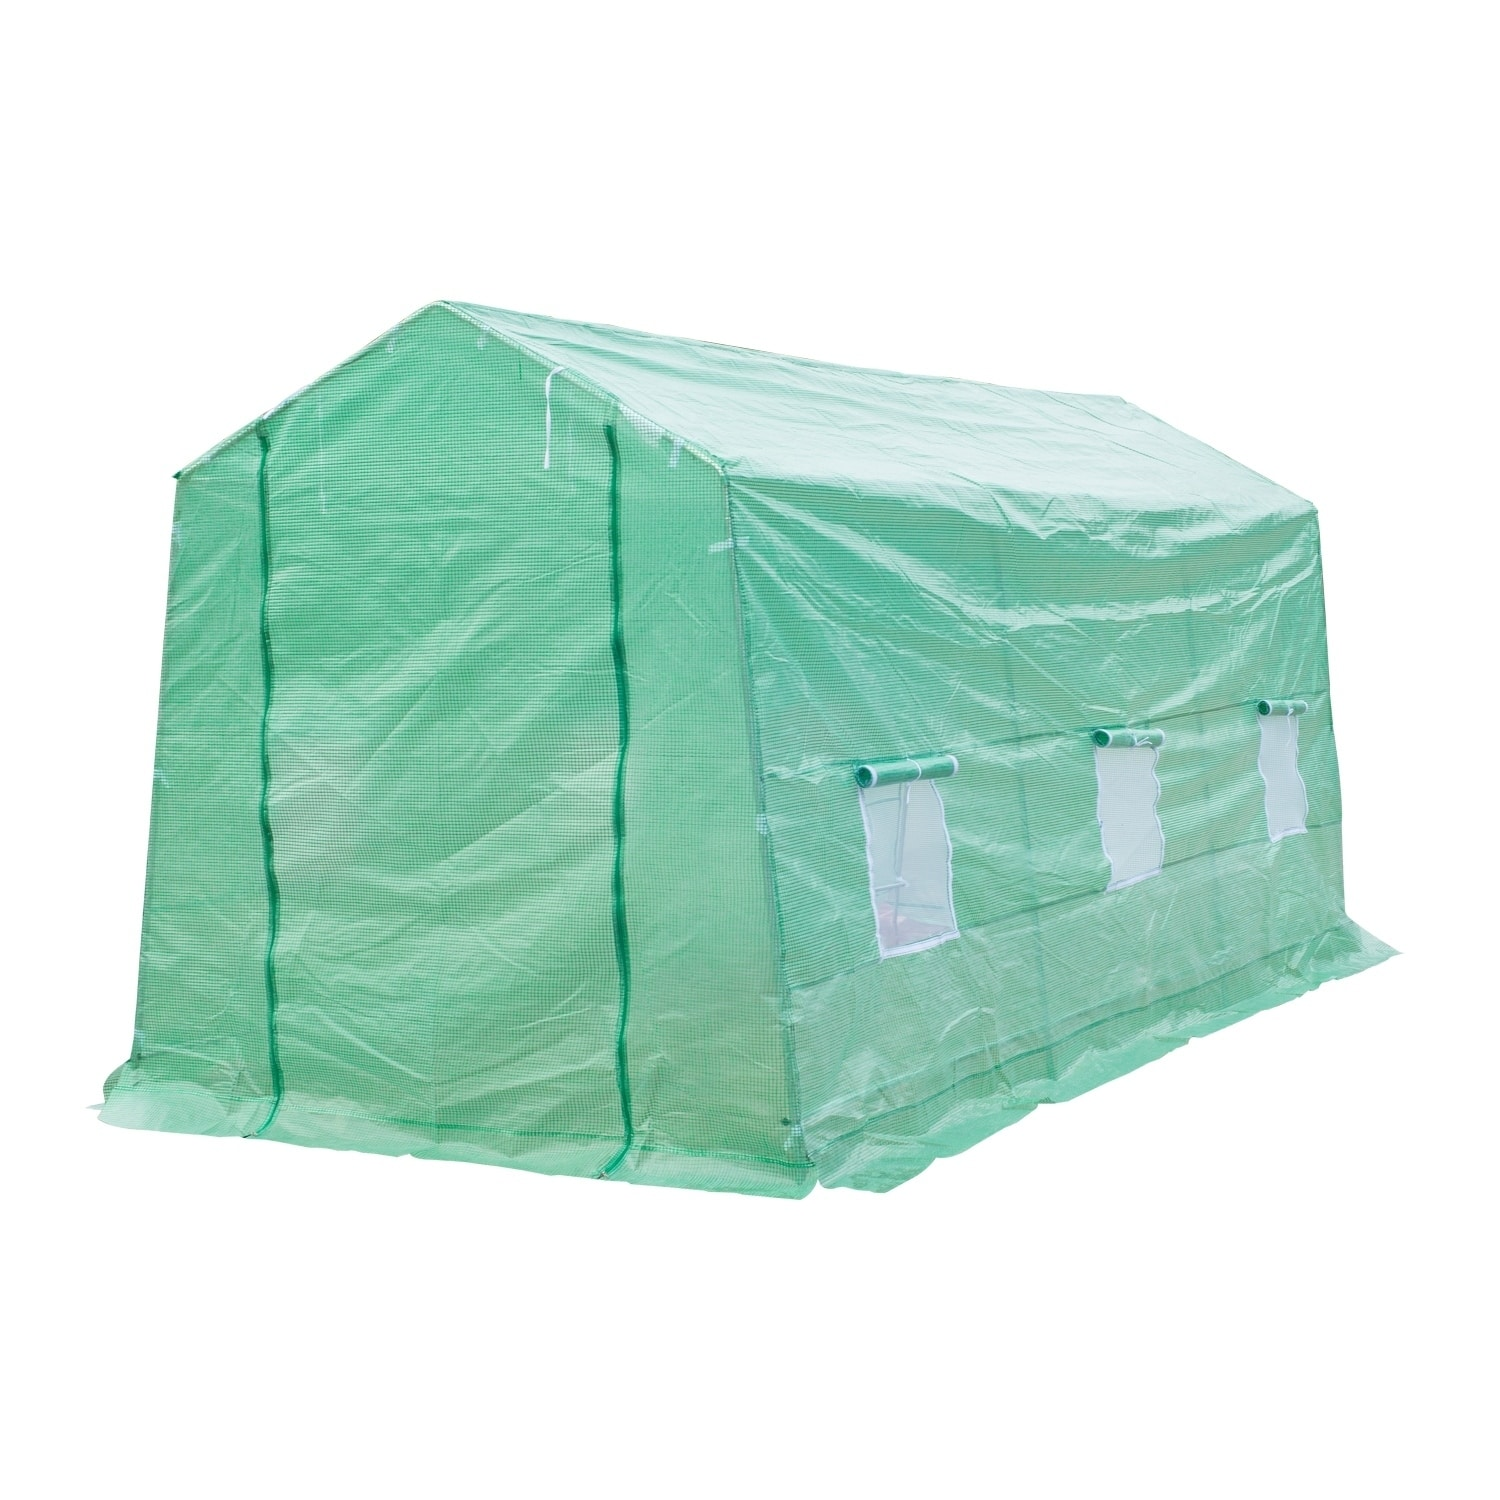 Outsunny 15 ft x 7 ft x 7 ft Portable Walk-In Garden Gree...